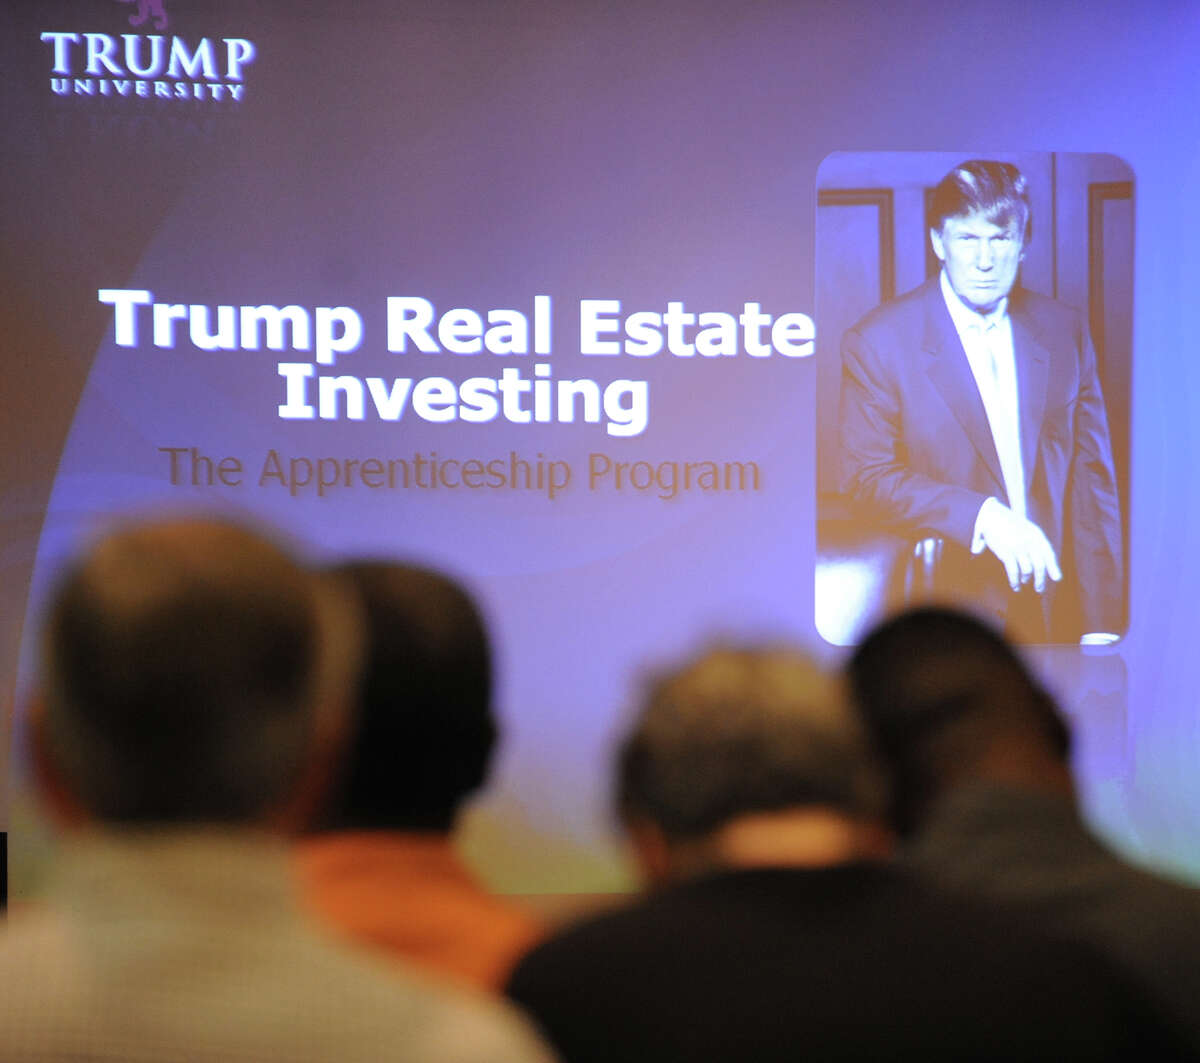 """10 things to know about Trump UniversityHow did students lose so much to the school? The alleged scam started out as a free 90-minute seminar on making money in real estate. If you really wanted to learn how to profit in the industry, prosecutors said the school sold you on a three-day seminar that cost $1,495. From there, the school offered """"Trump Elite Packages"""" that cost as much as $35,995. Trump University officials would encourage students """"to request higher credit limits"""" so they could pay for the more expensive programs."""